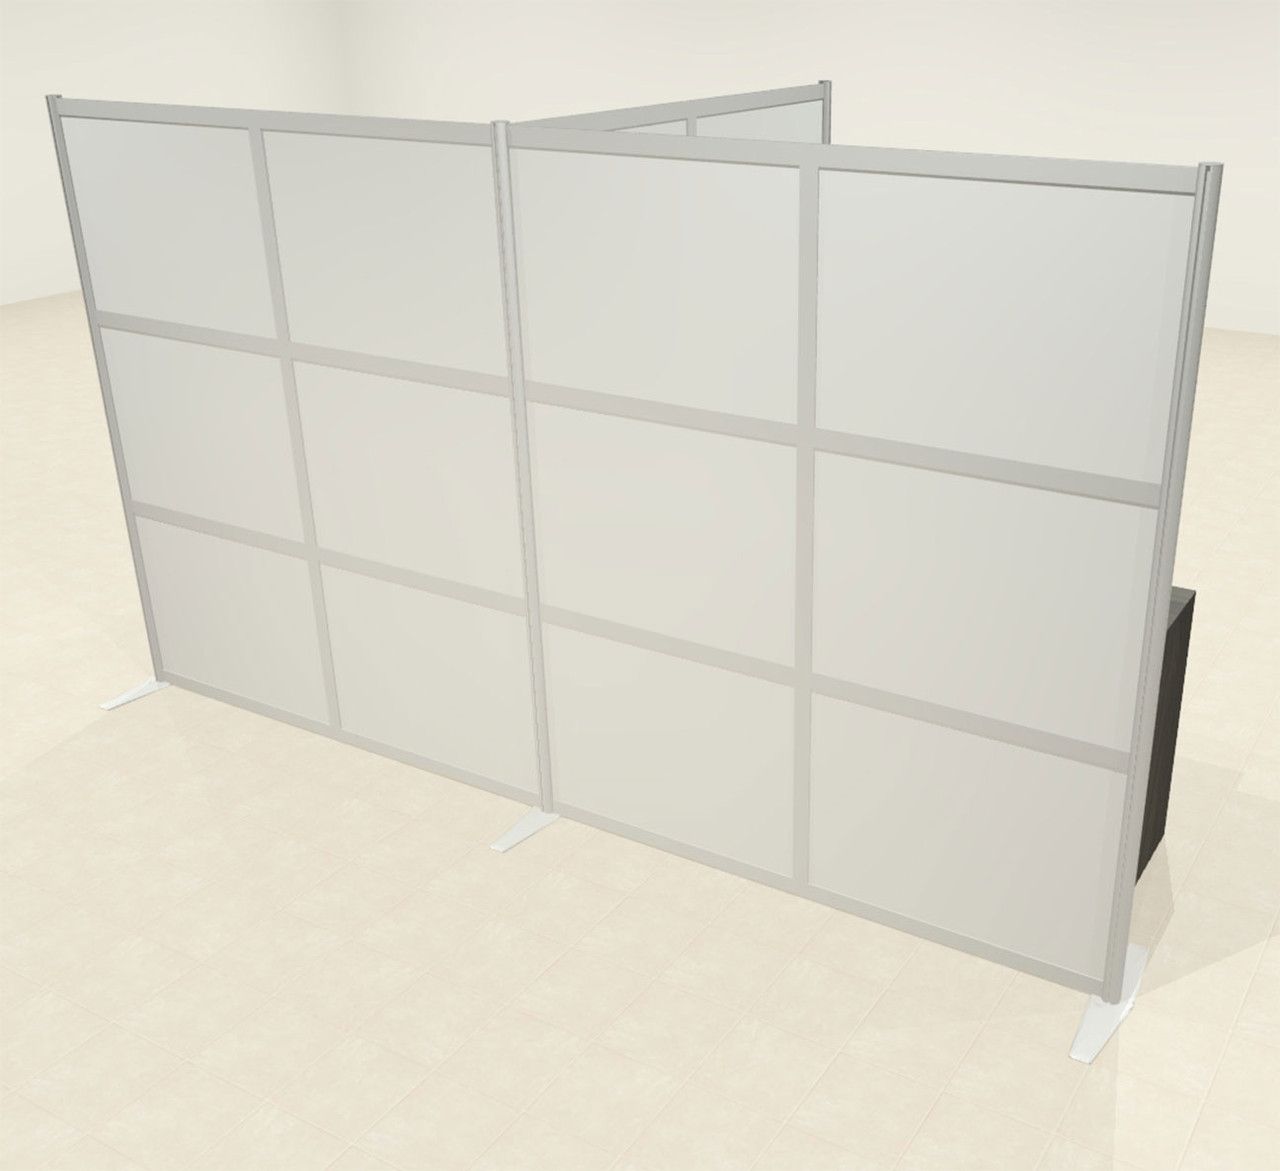 One T Shaped Loft Modern Office Home Aluminum Frame Partition / Divider / Sneeze Guard, #UT-ALU-P69